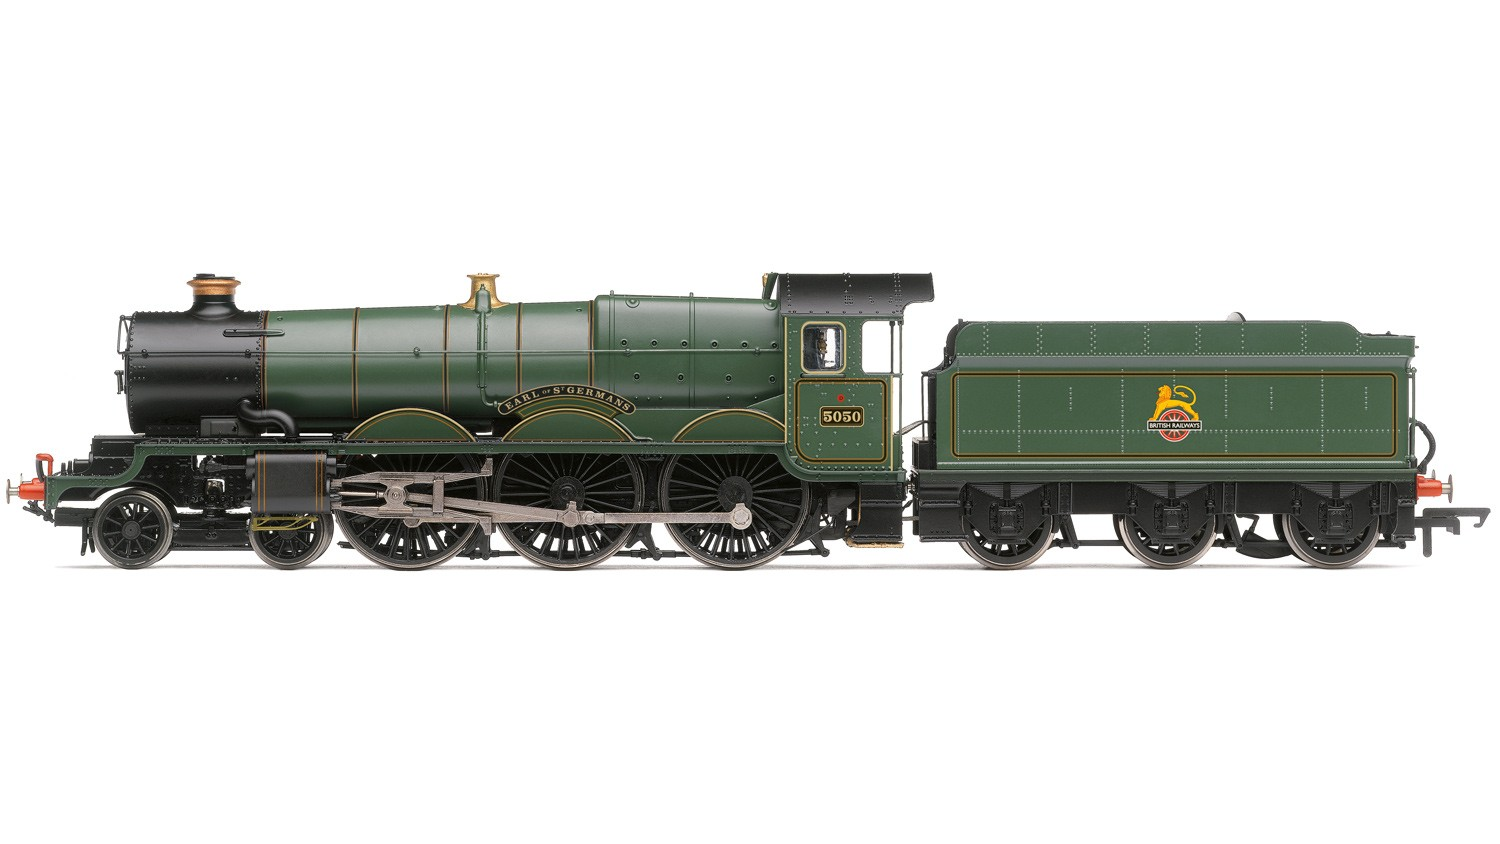 Hornby R3383TTS GWR 4073 Castle 5050 Earl of St. Germans Image